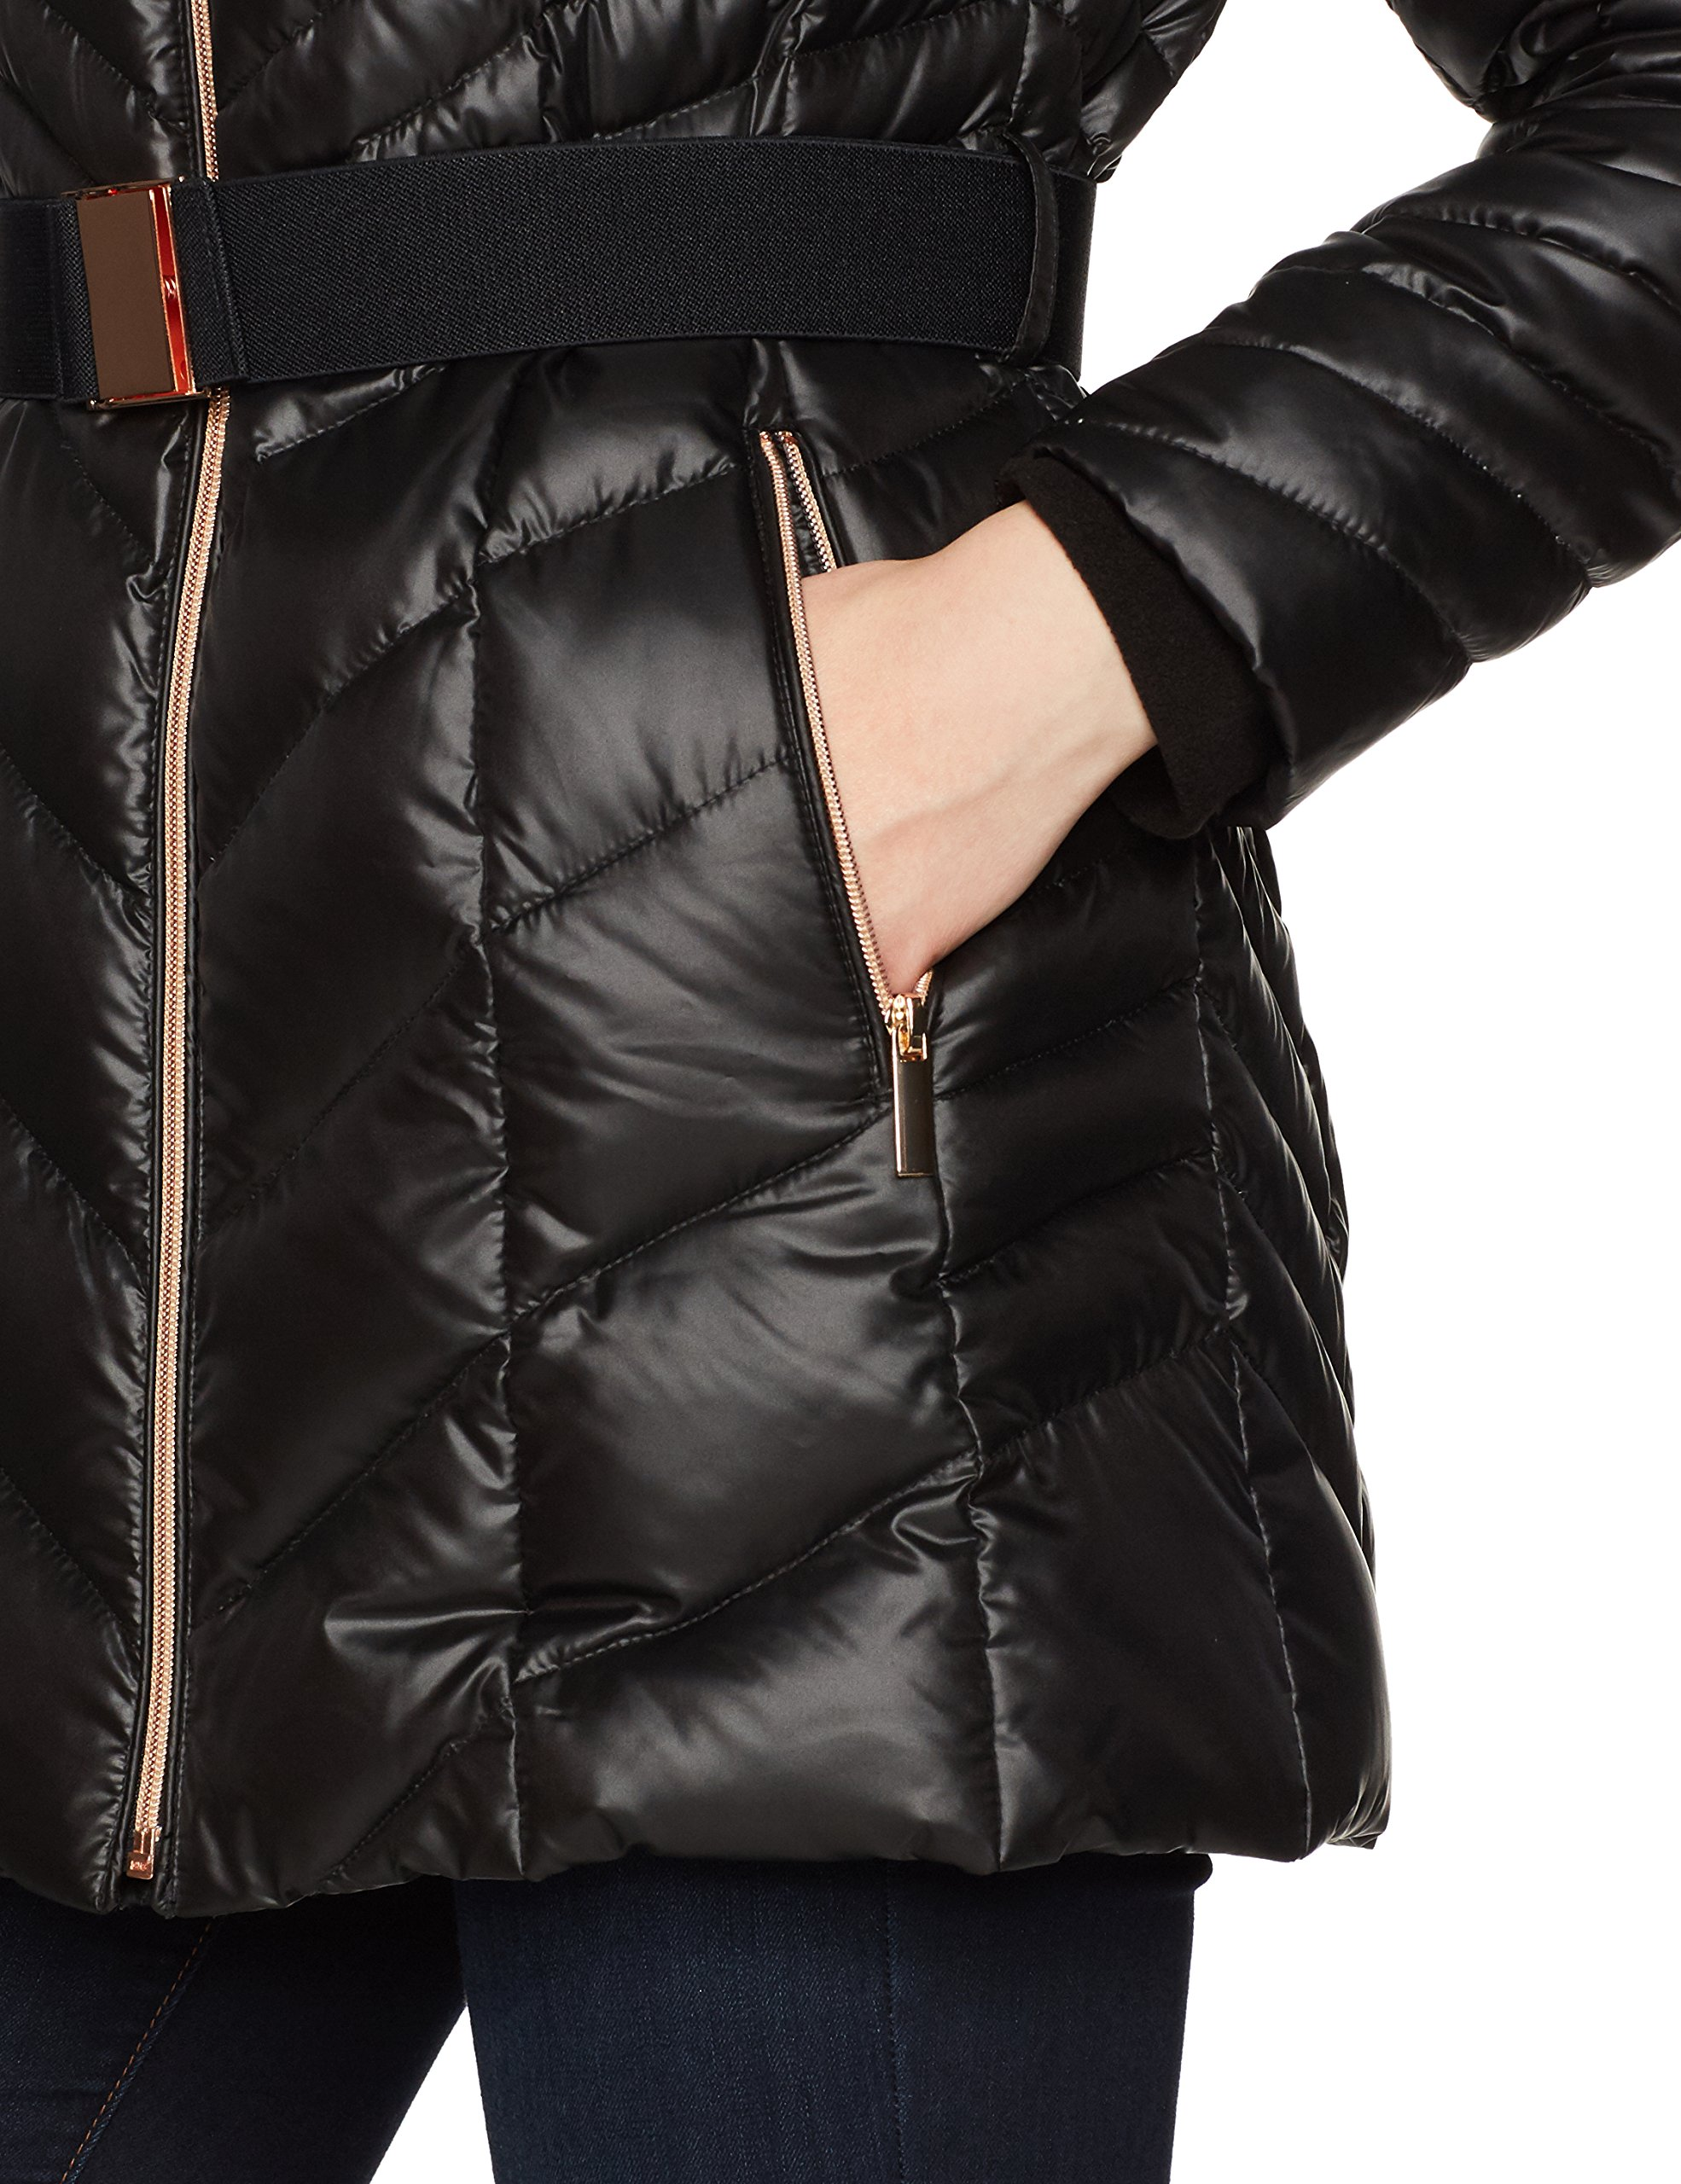 HAVEN OUTERWEAR Women's Bib Front Belted Down Jacket, Black, Large by HAVEN OUTERWEAR (Image #8)